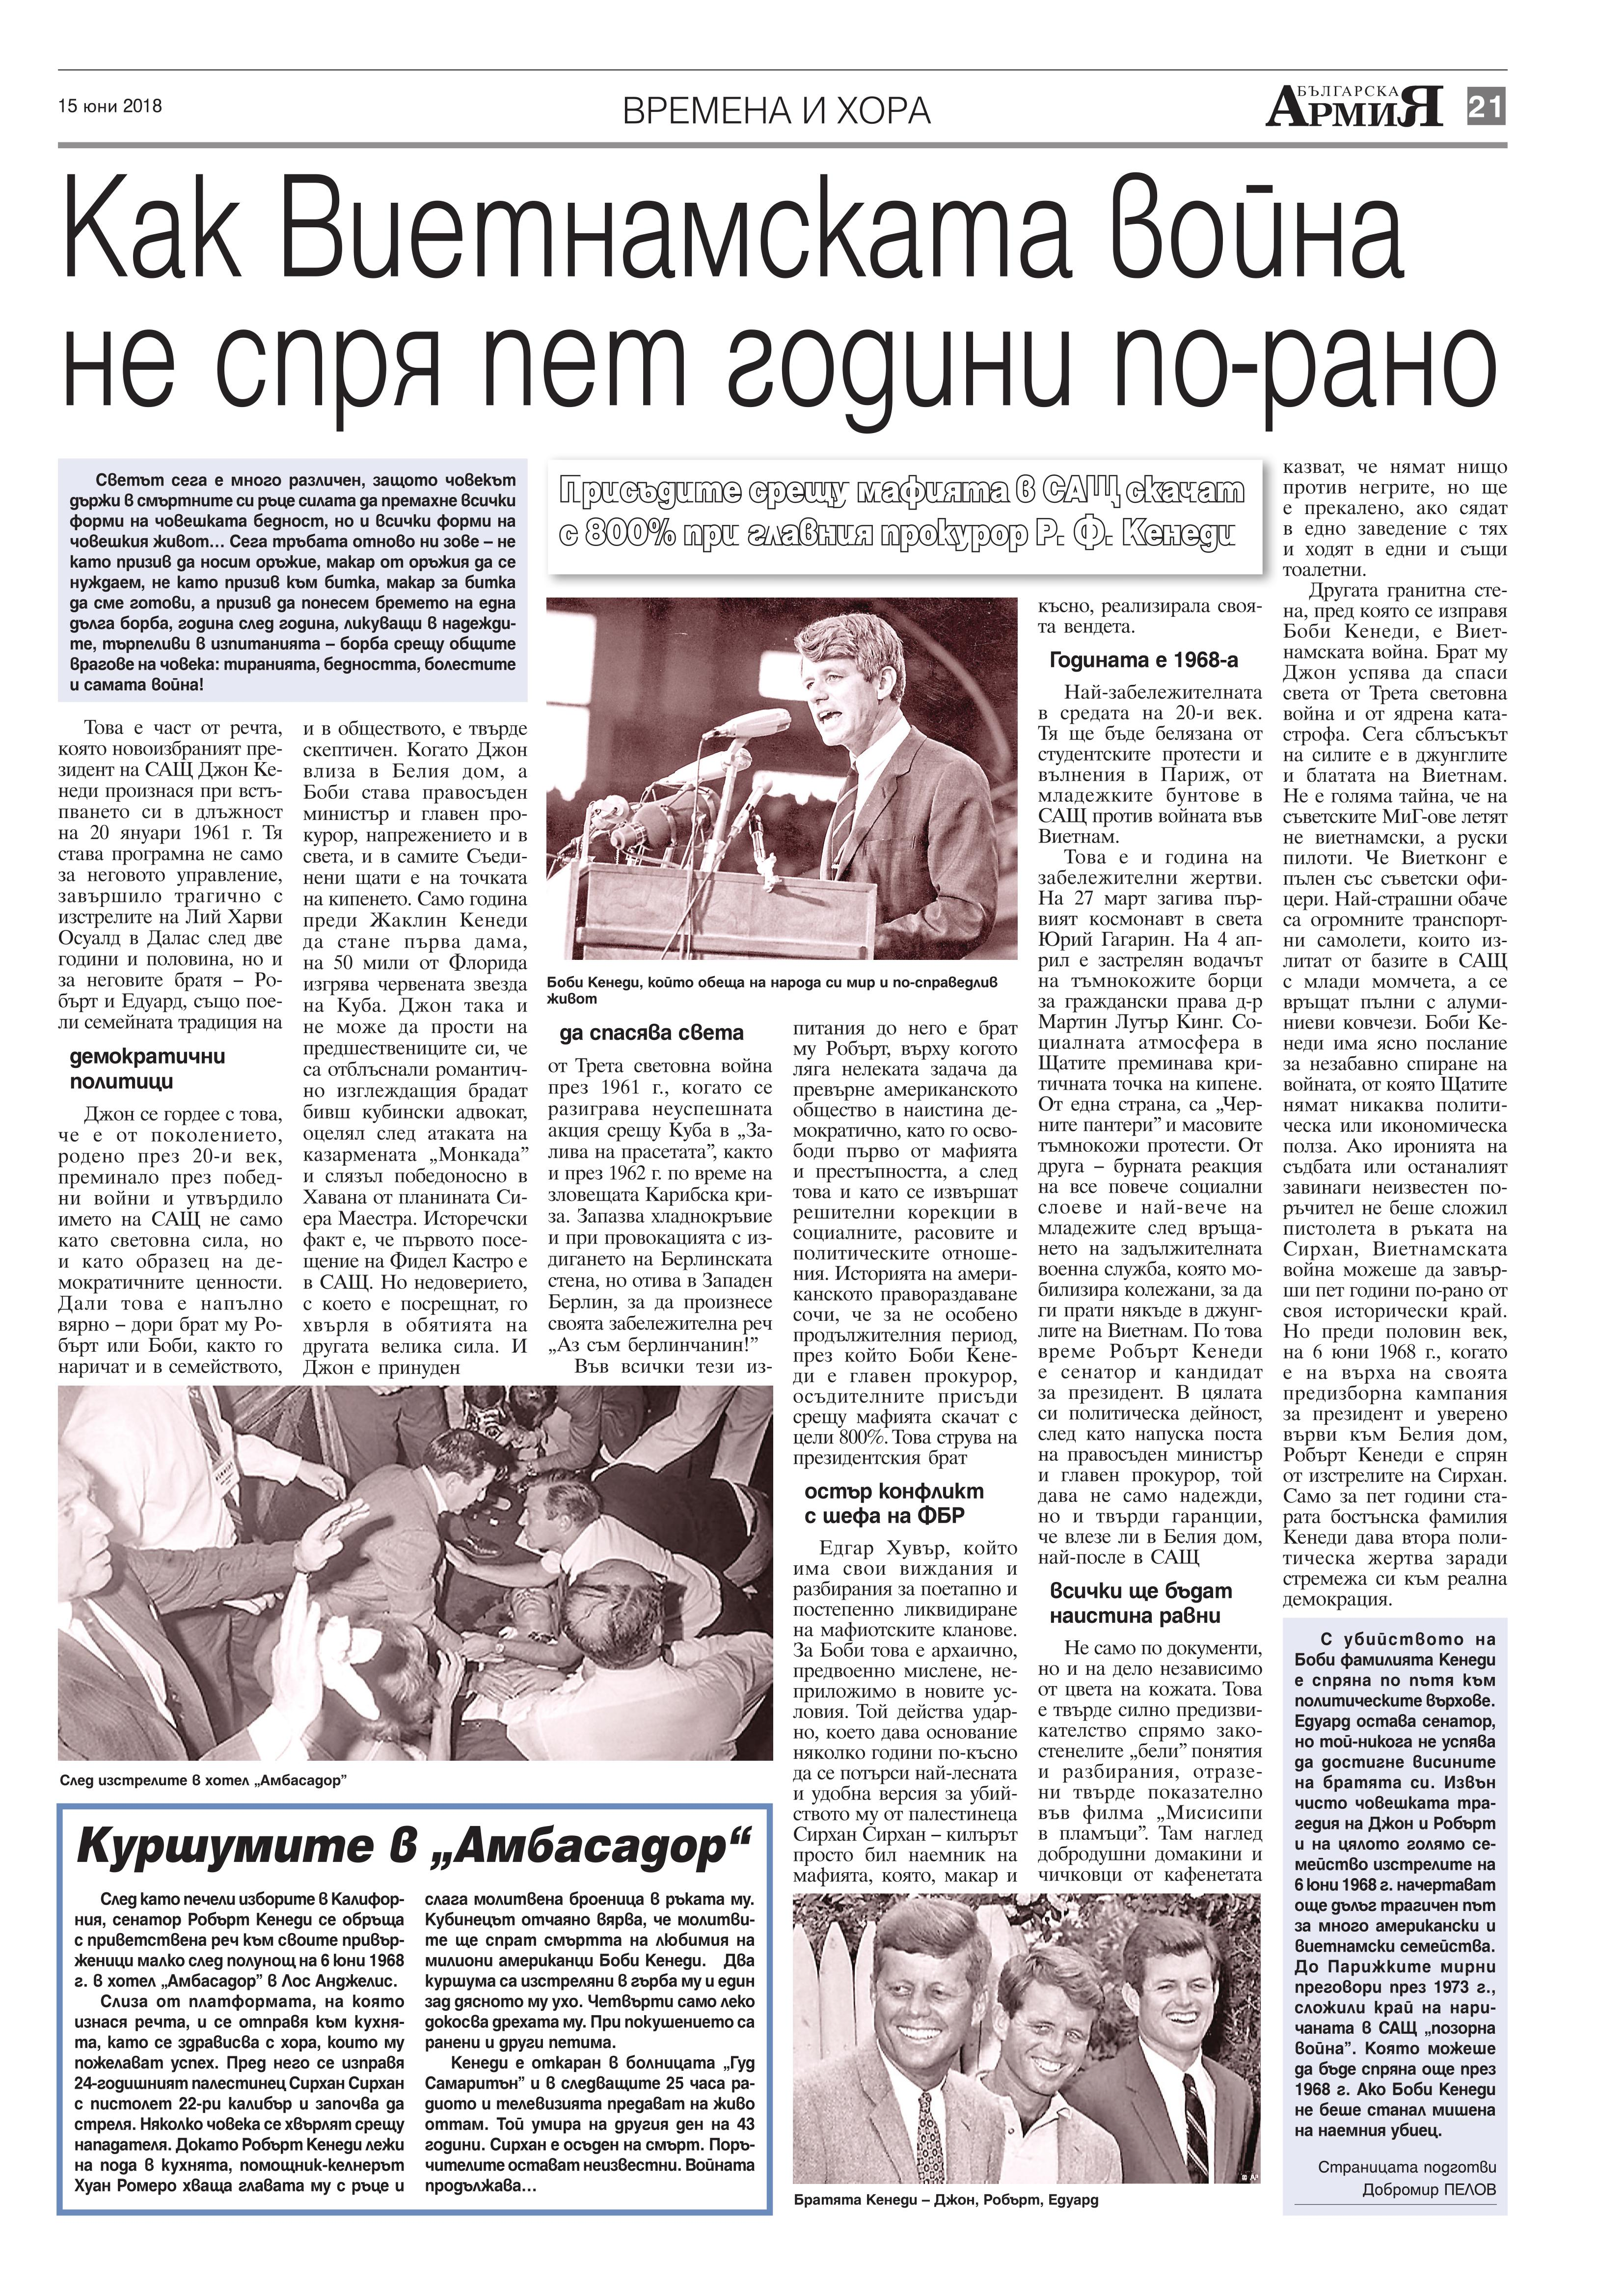 http://armymedia.bg/wp-content/uploads/2015/06/21.page1_-55.jpg